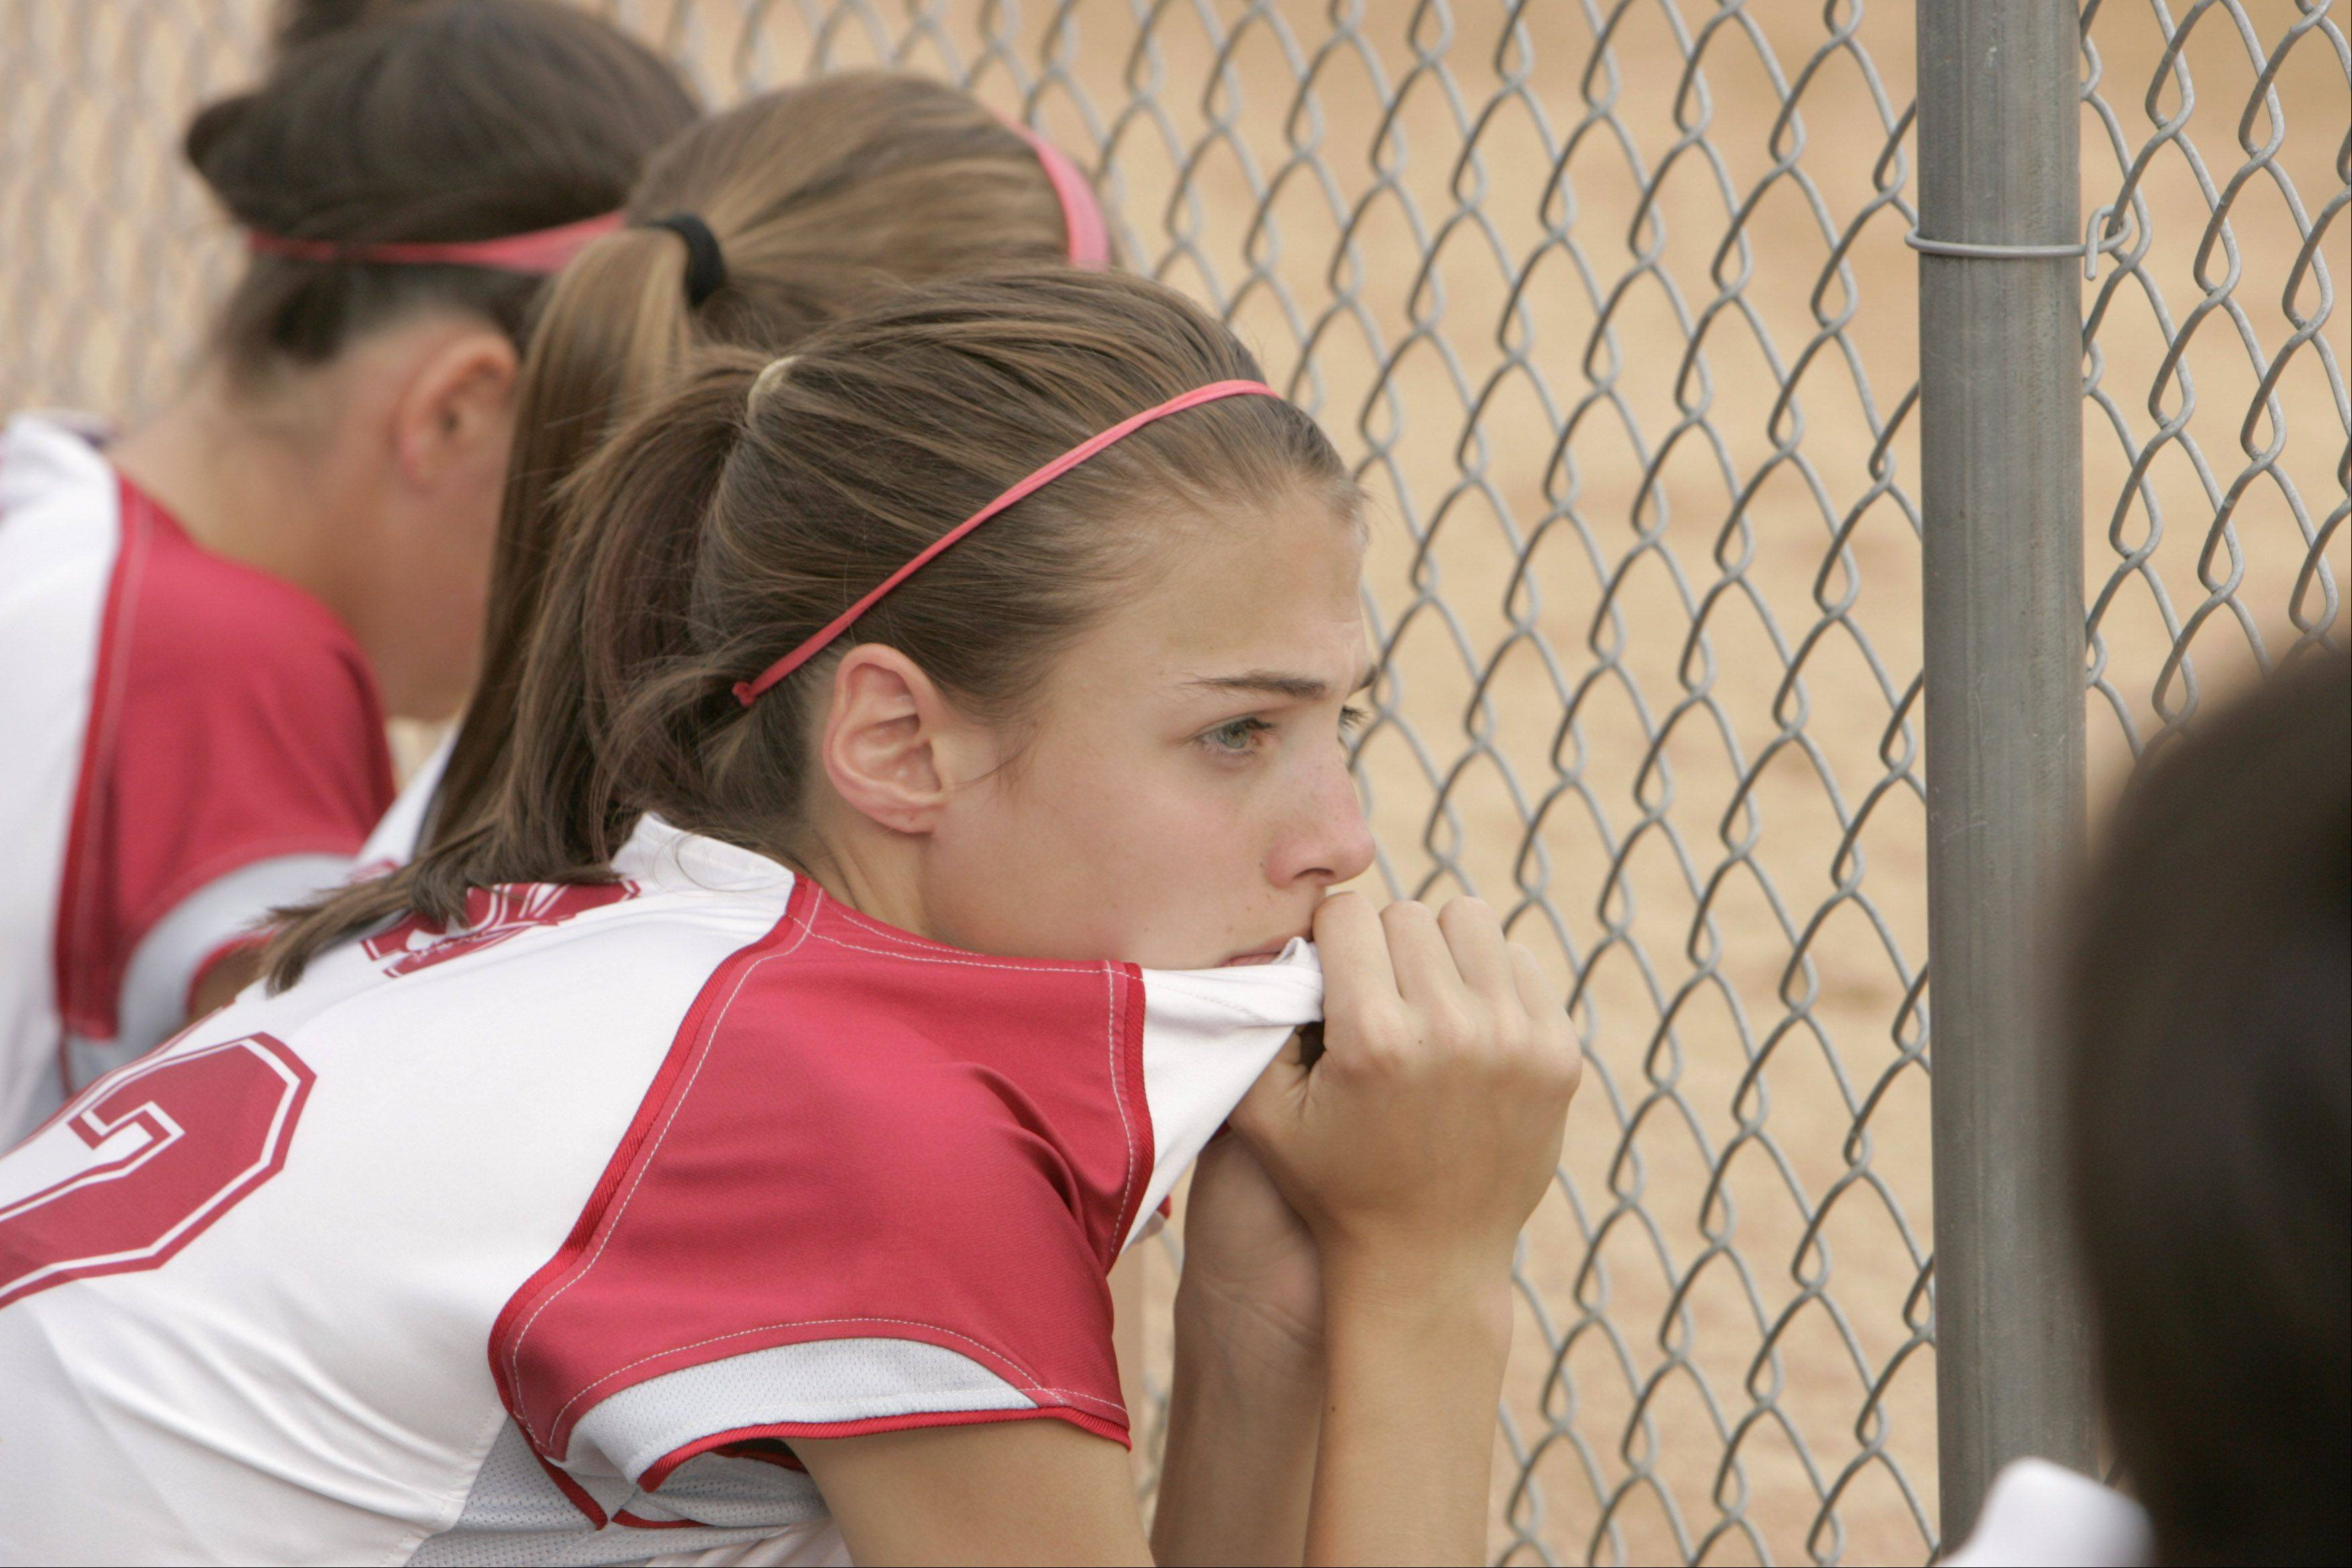 Naperville Central freshman Kristina Vizza watches her team during the final inning in their 2-0 loss to Edwardsville at their Class 4A semi-final game on Friday evening at the Eastside Centre fields in East Peoria.